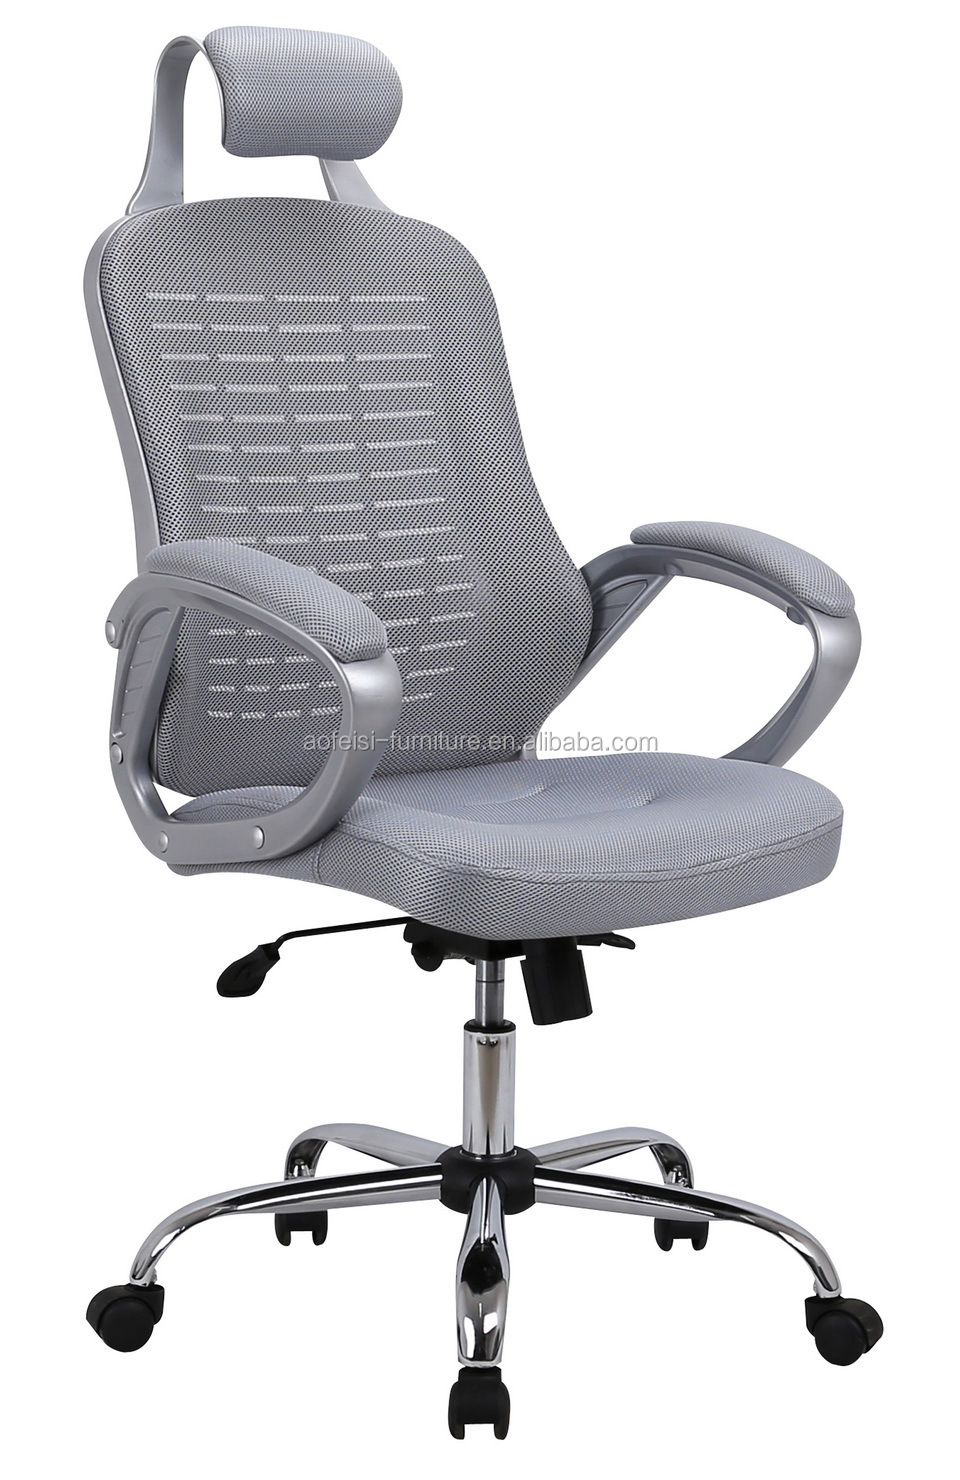 midback mesh office chair buy heated office chair